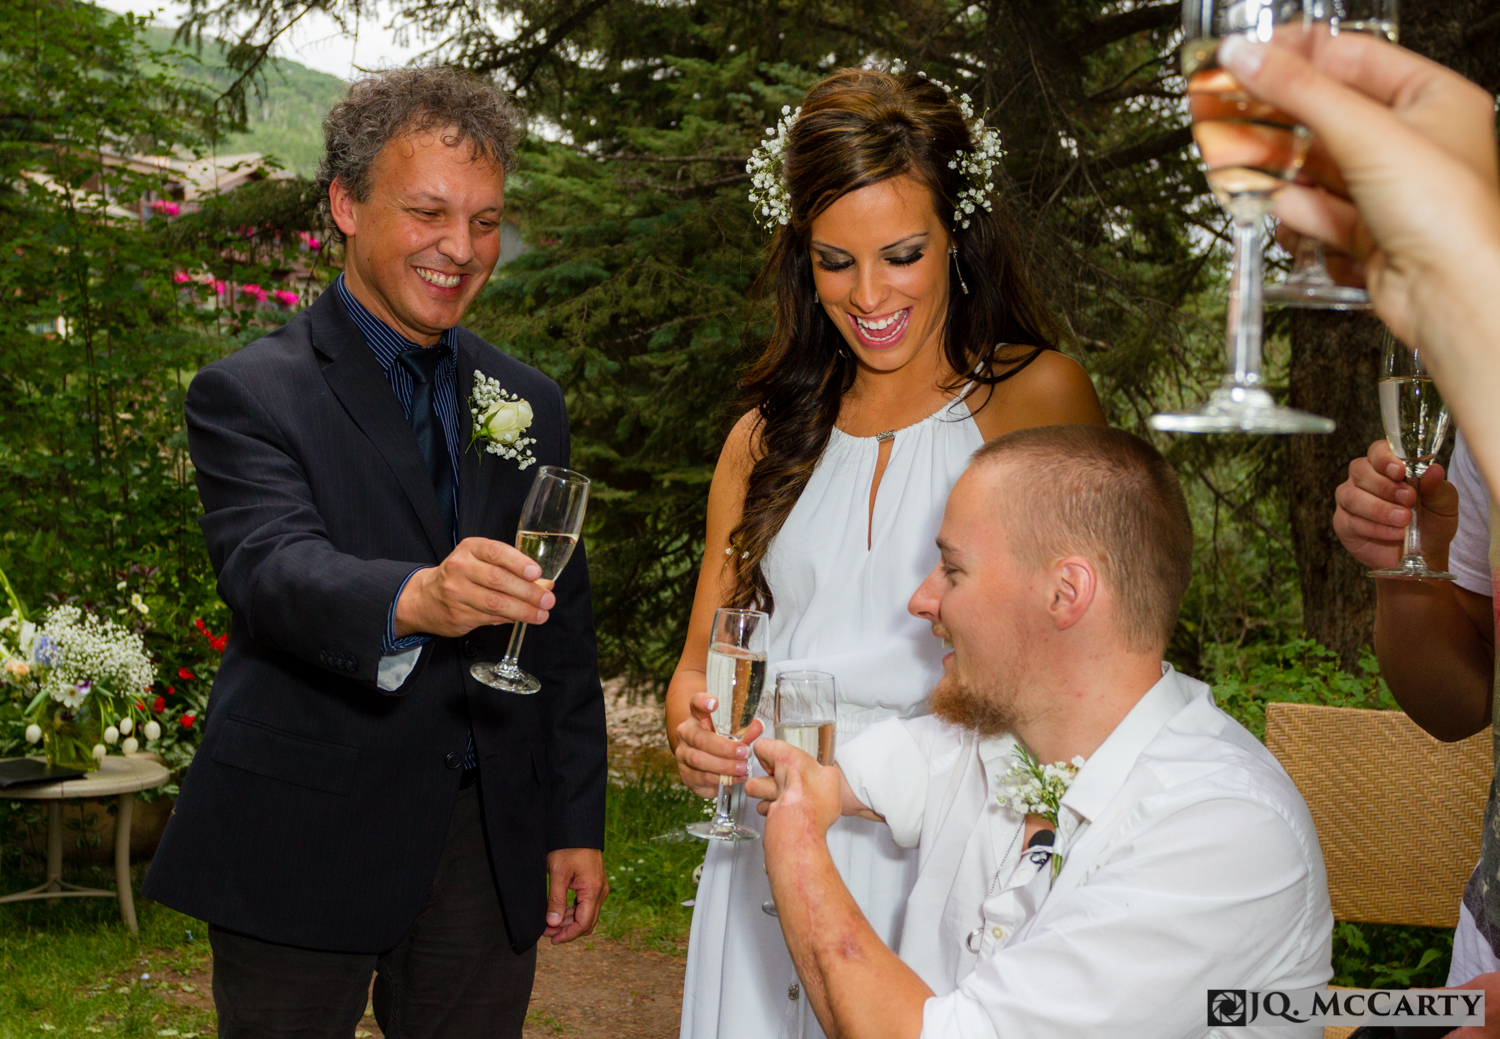 The father of the bride Michael MacVean, left, gives cheers to the newlywed couple after making a toast to his son-in-law's couragous path in courting his daughter after their impromptu wedding Wednesday at the Sonnenalp Hotel in Vail.